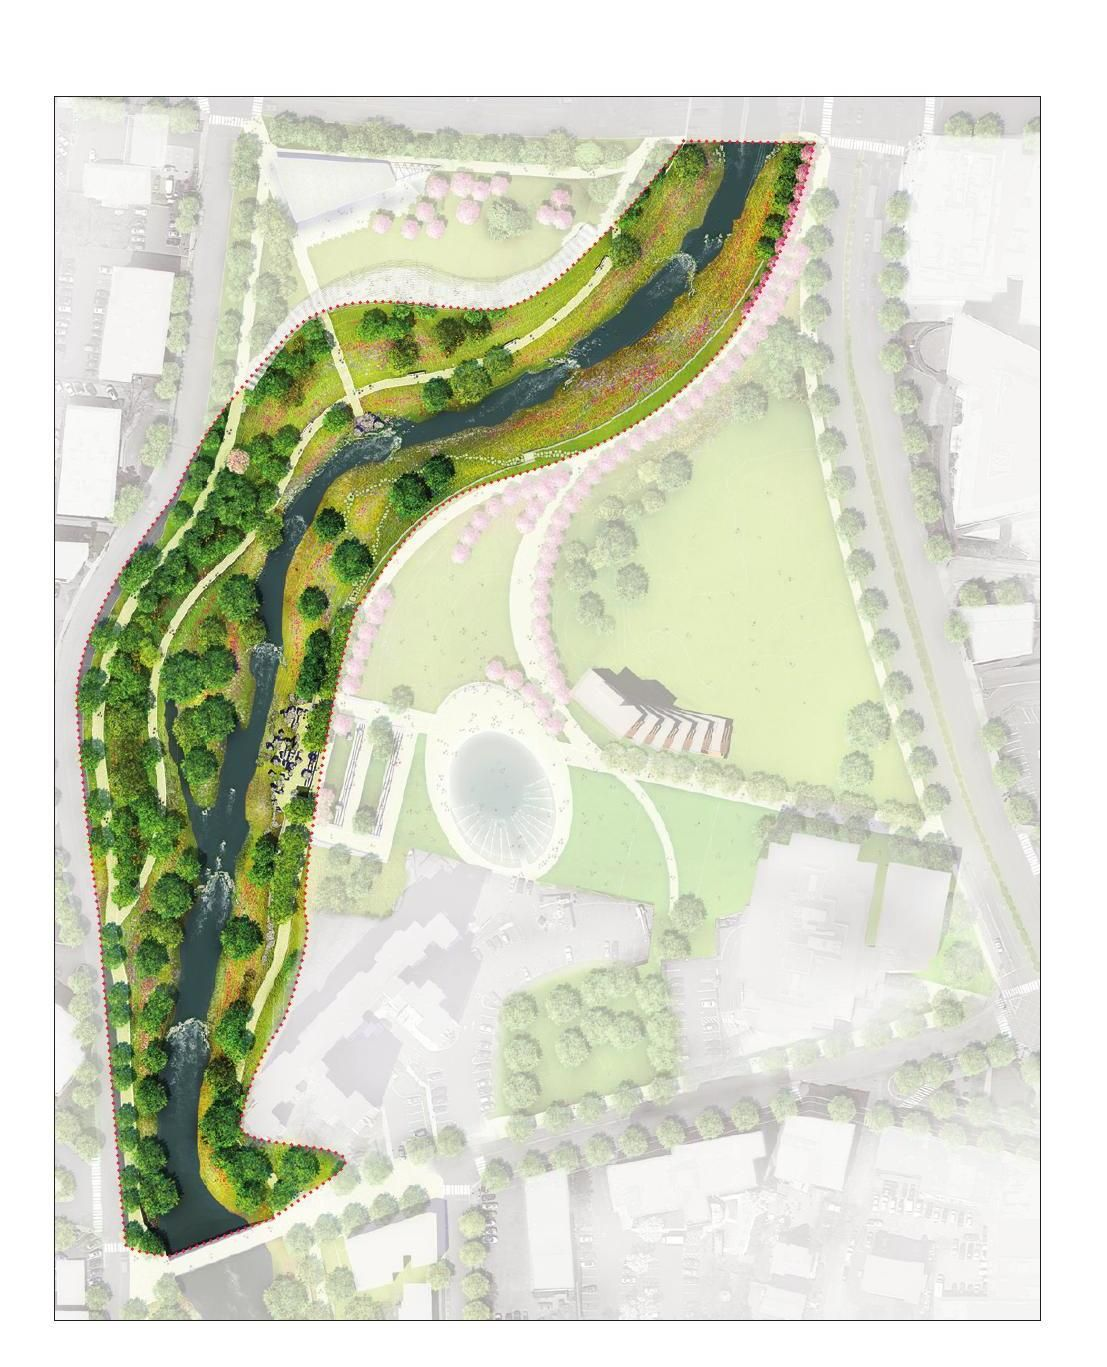 The Plan For Mill River Park